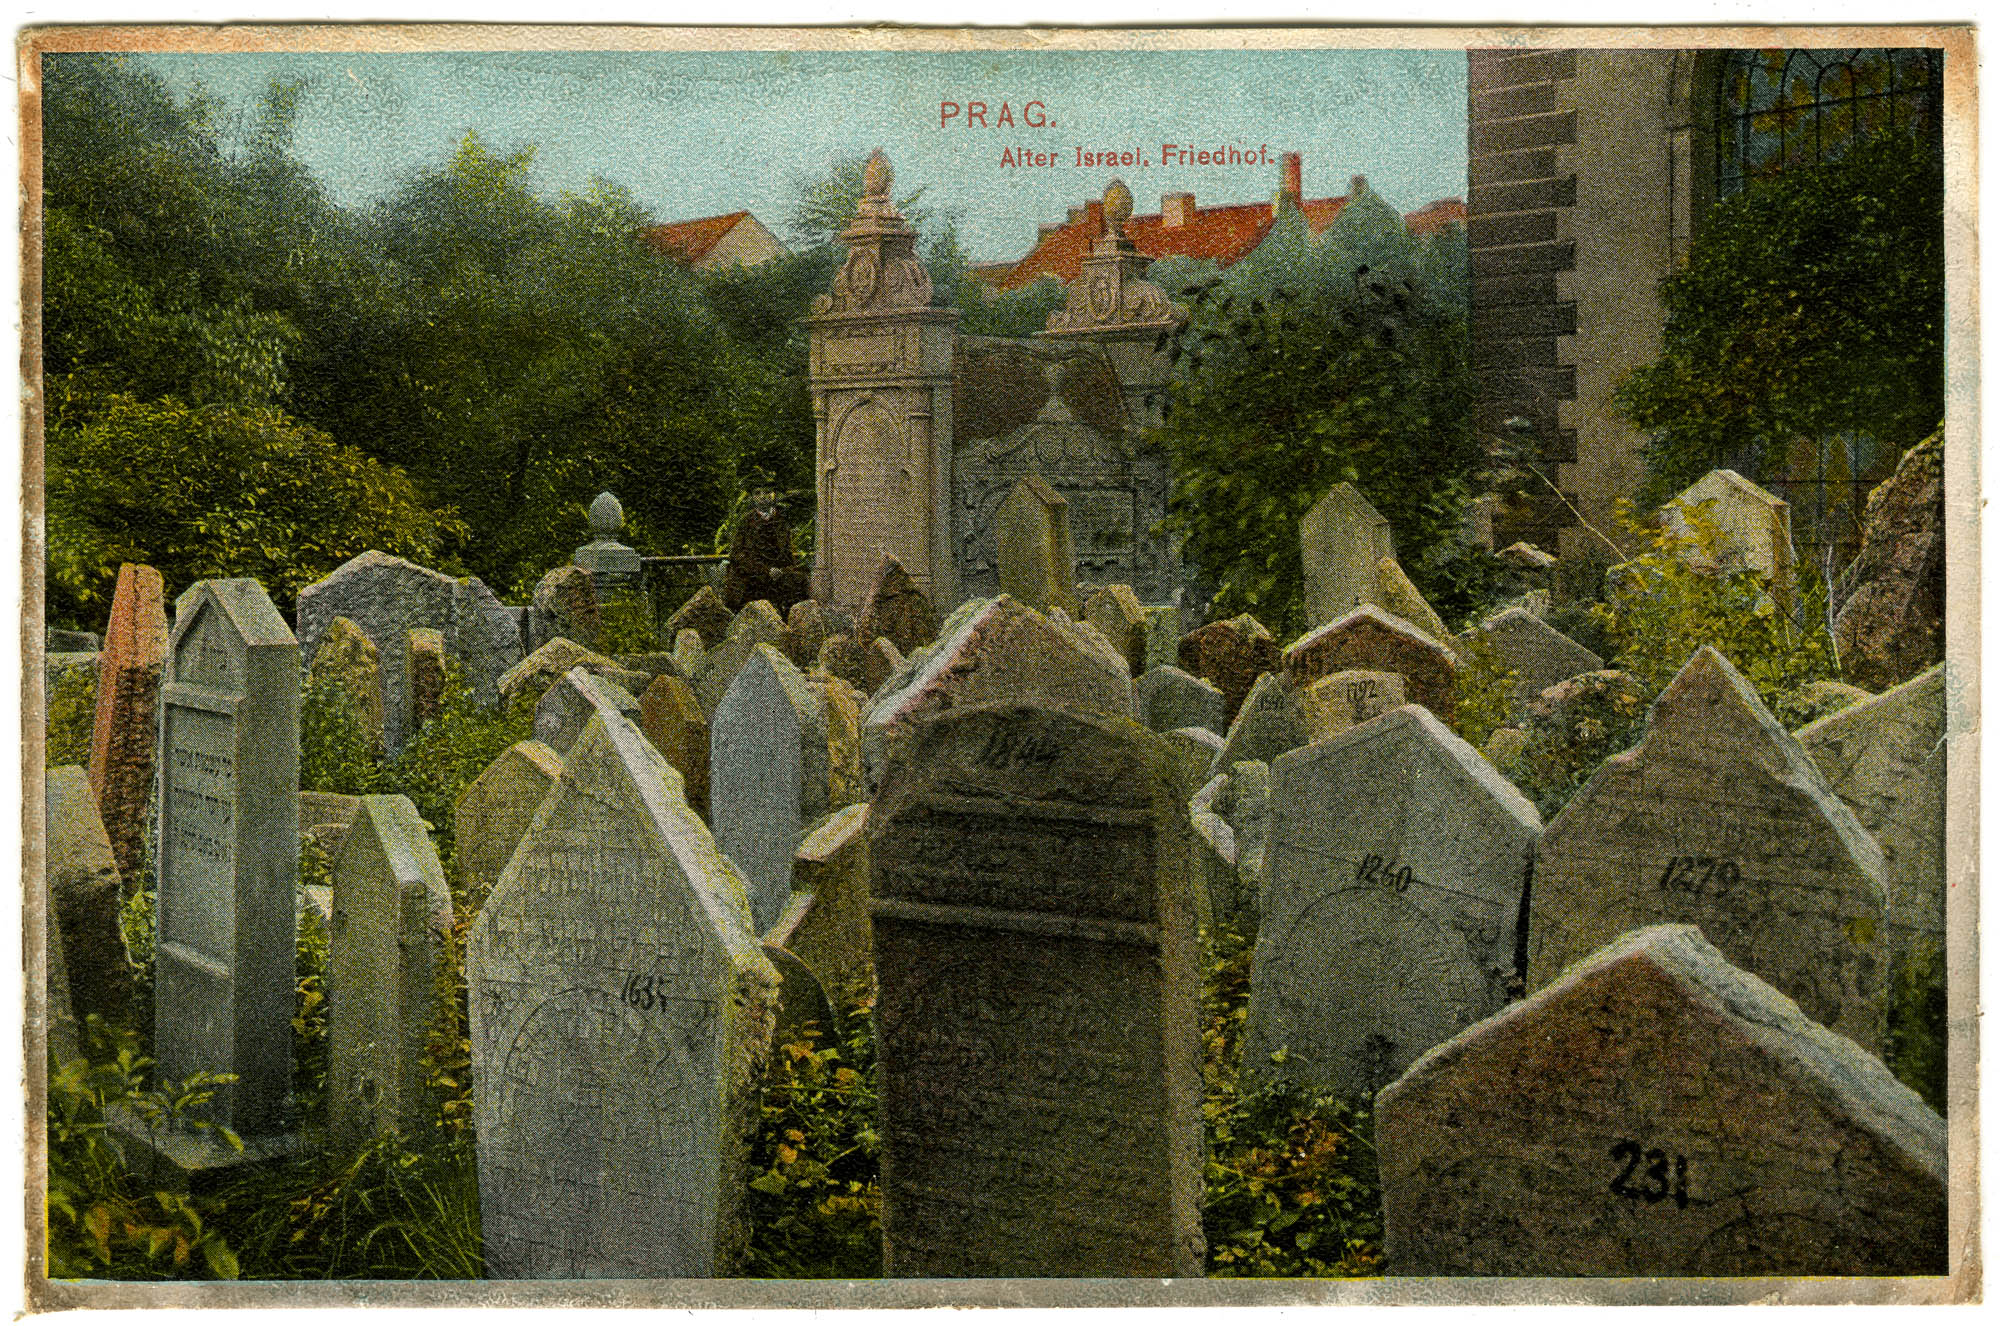 Prag. Alter israel. Friedhof.